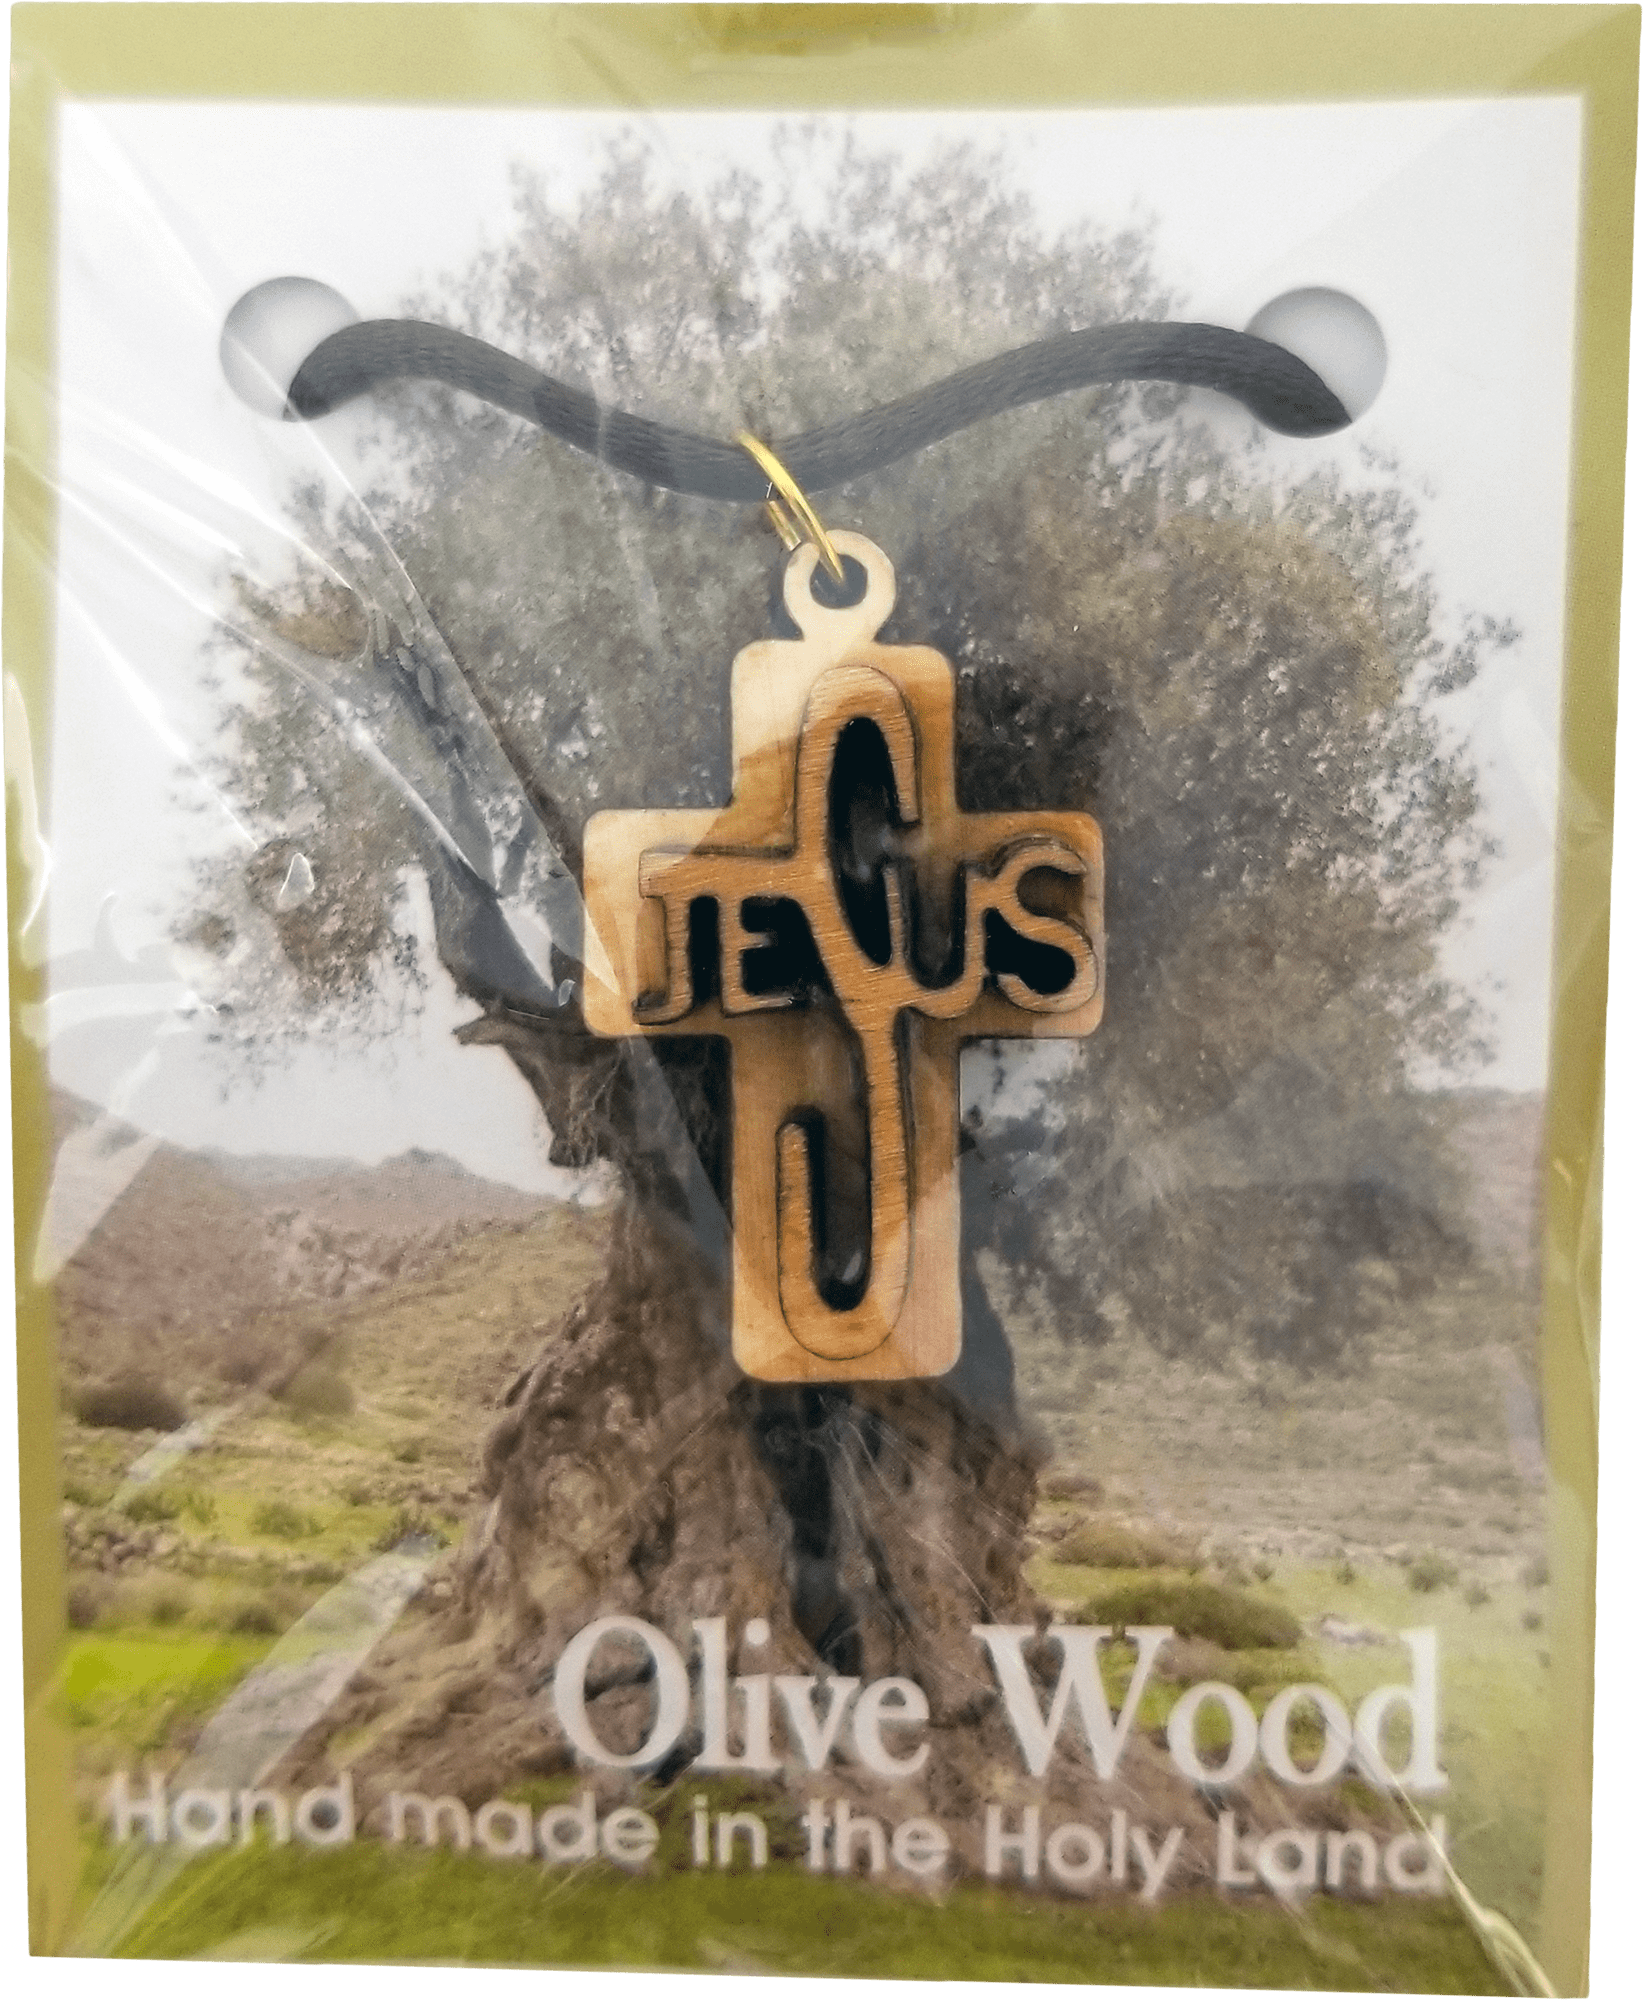 Holy Land Olive Wood Pendant Necklace, Jesus Cross Raised - Logos Trading Post, Christian Gift